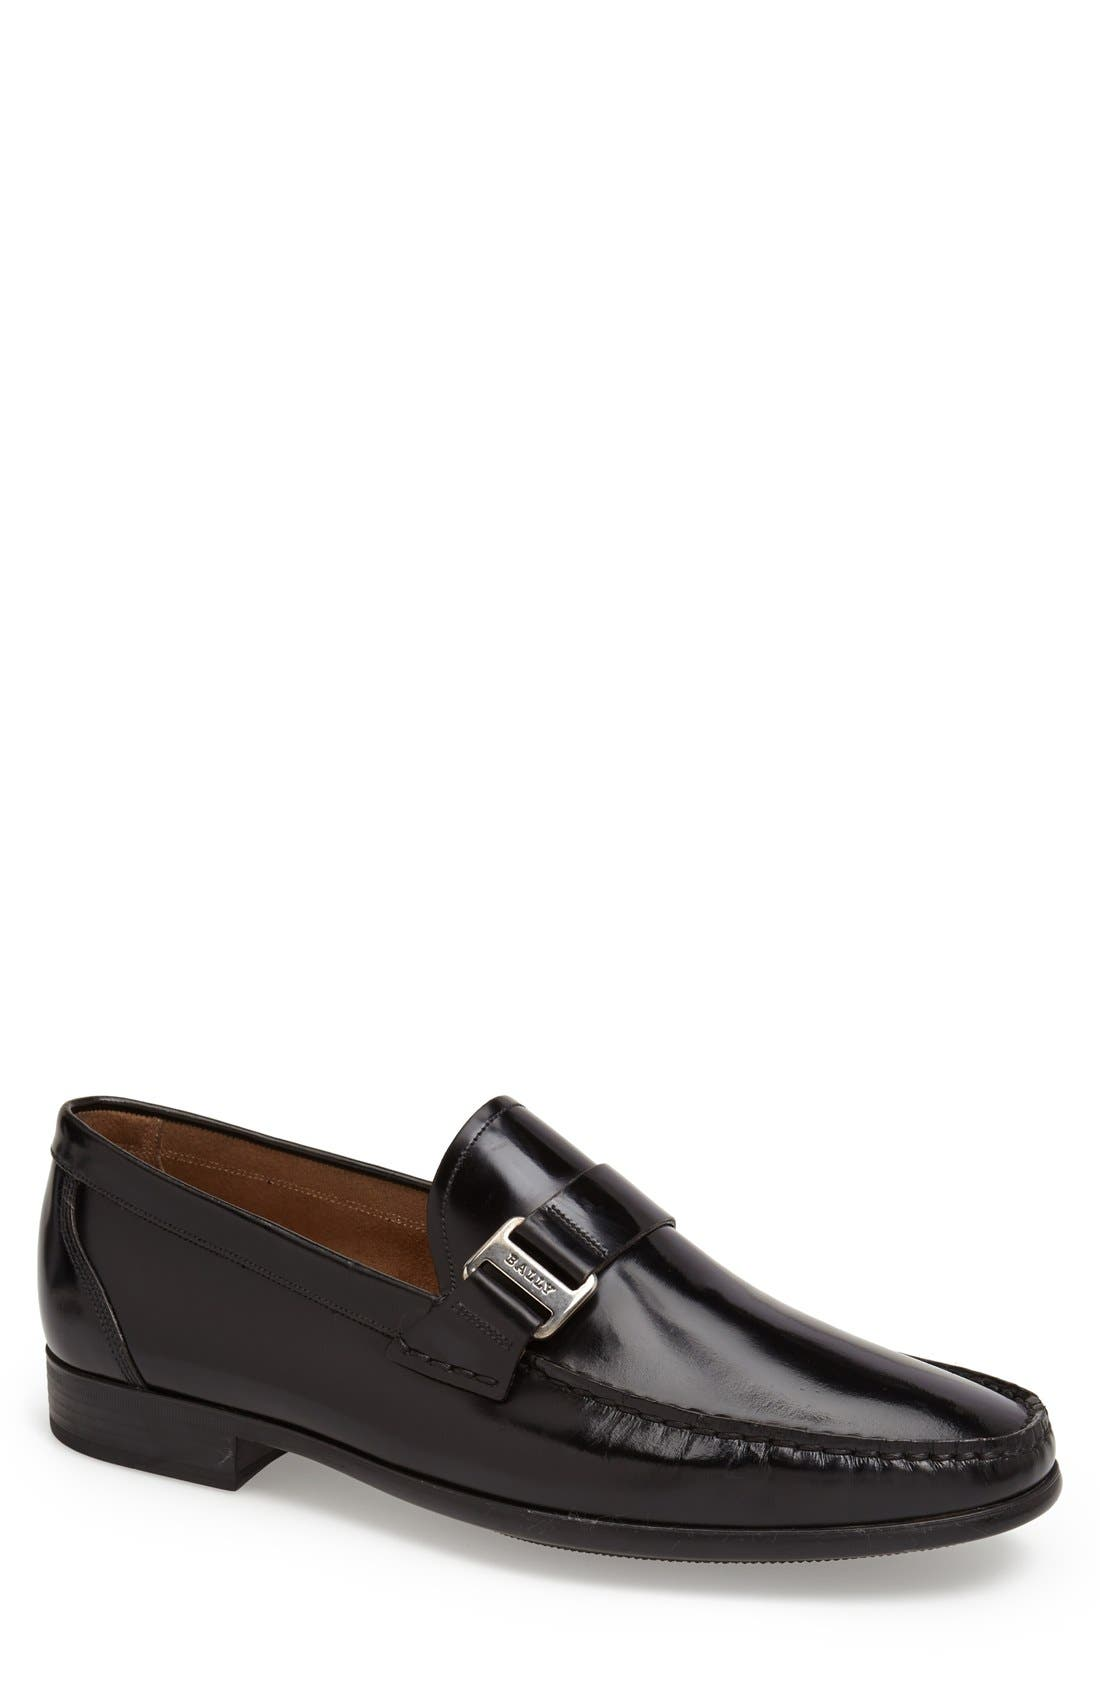 Main Image - Bally 'Colbar' Bit Loafer (Men)